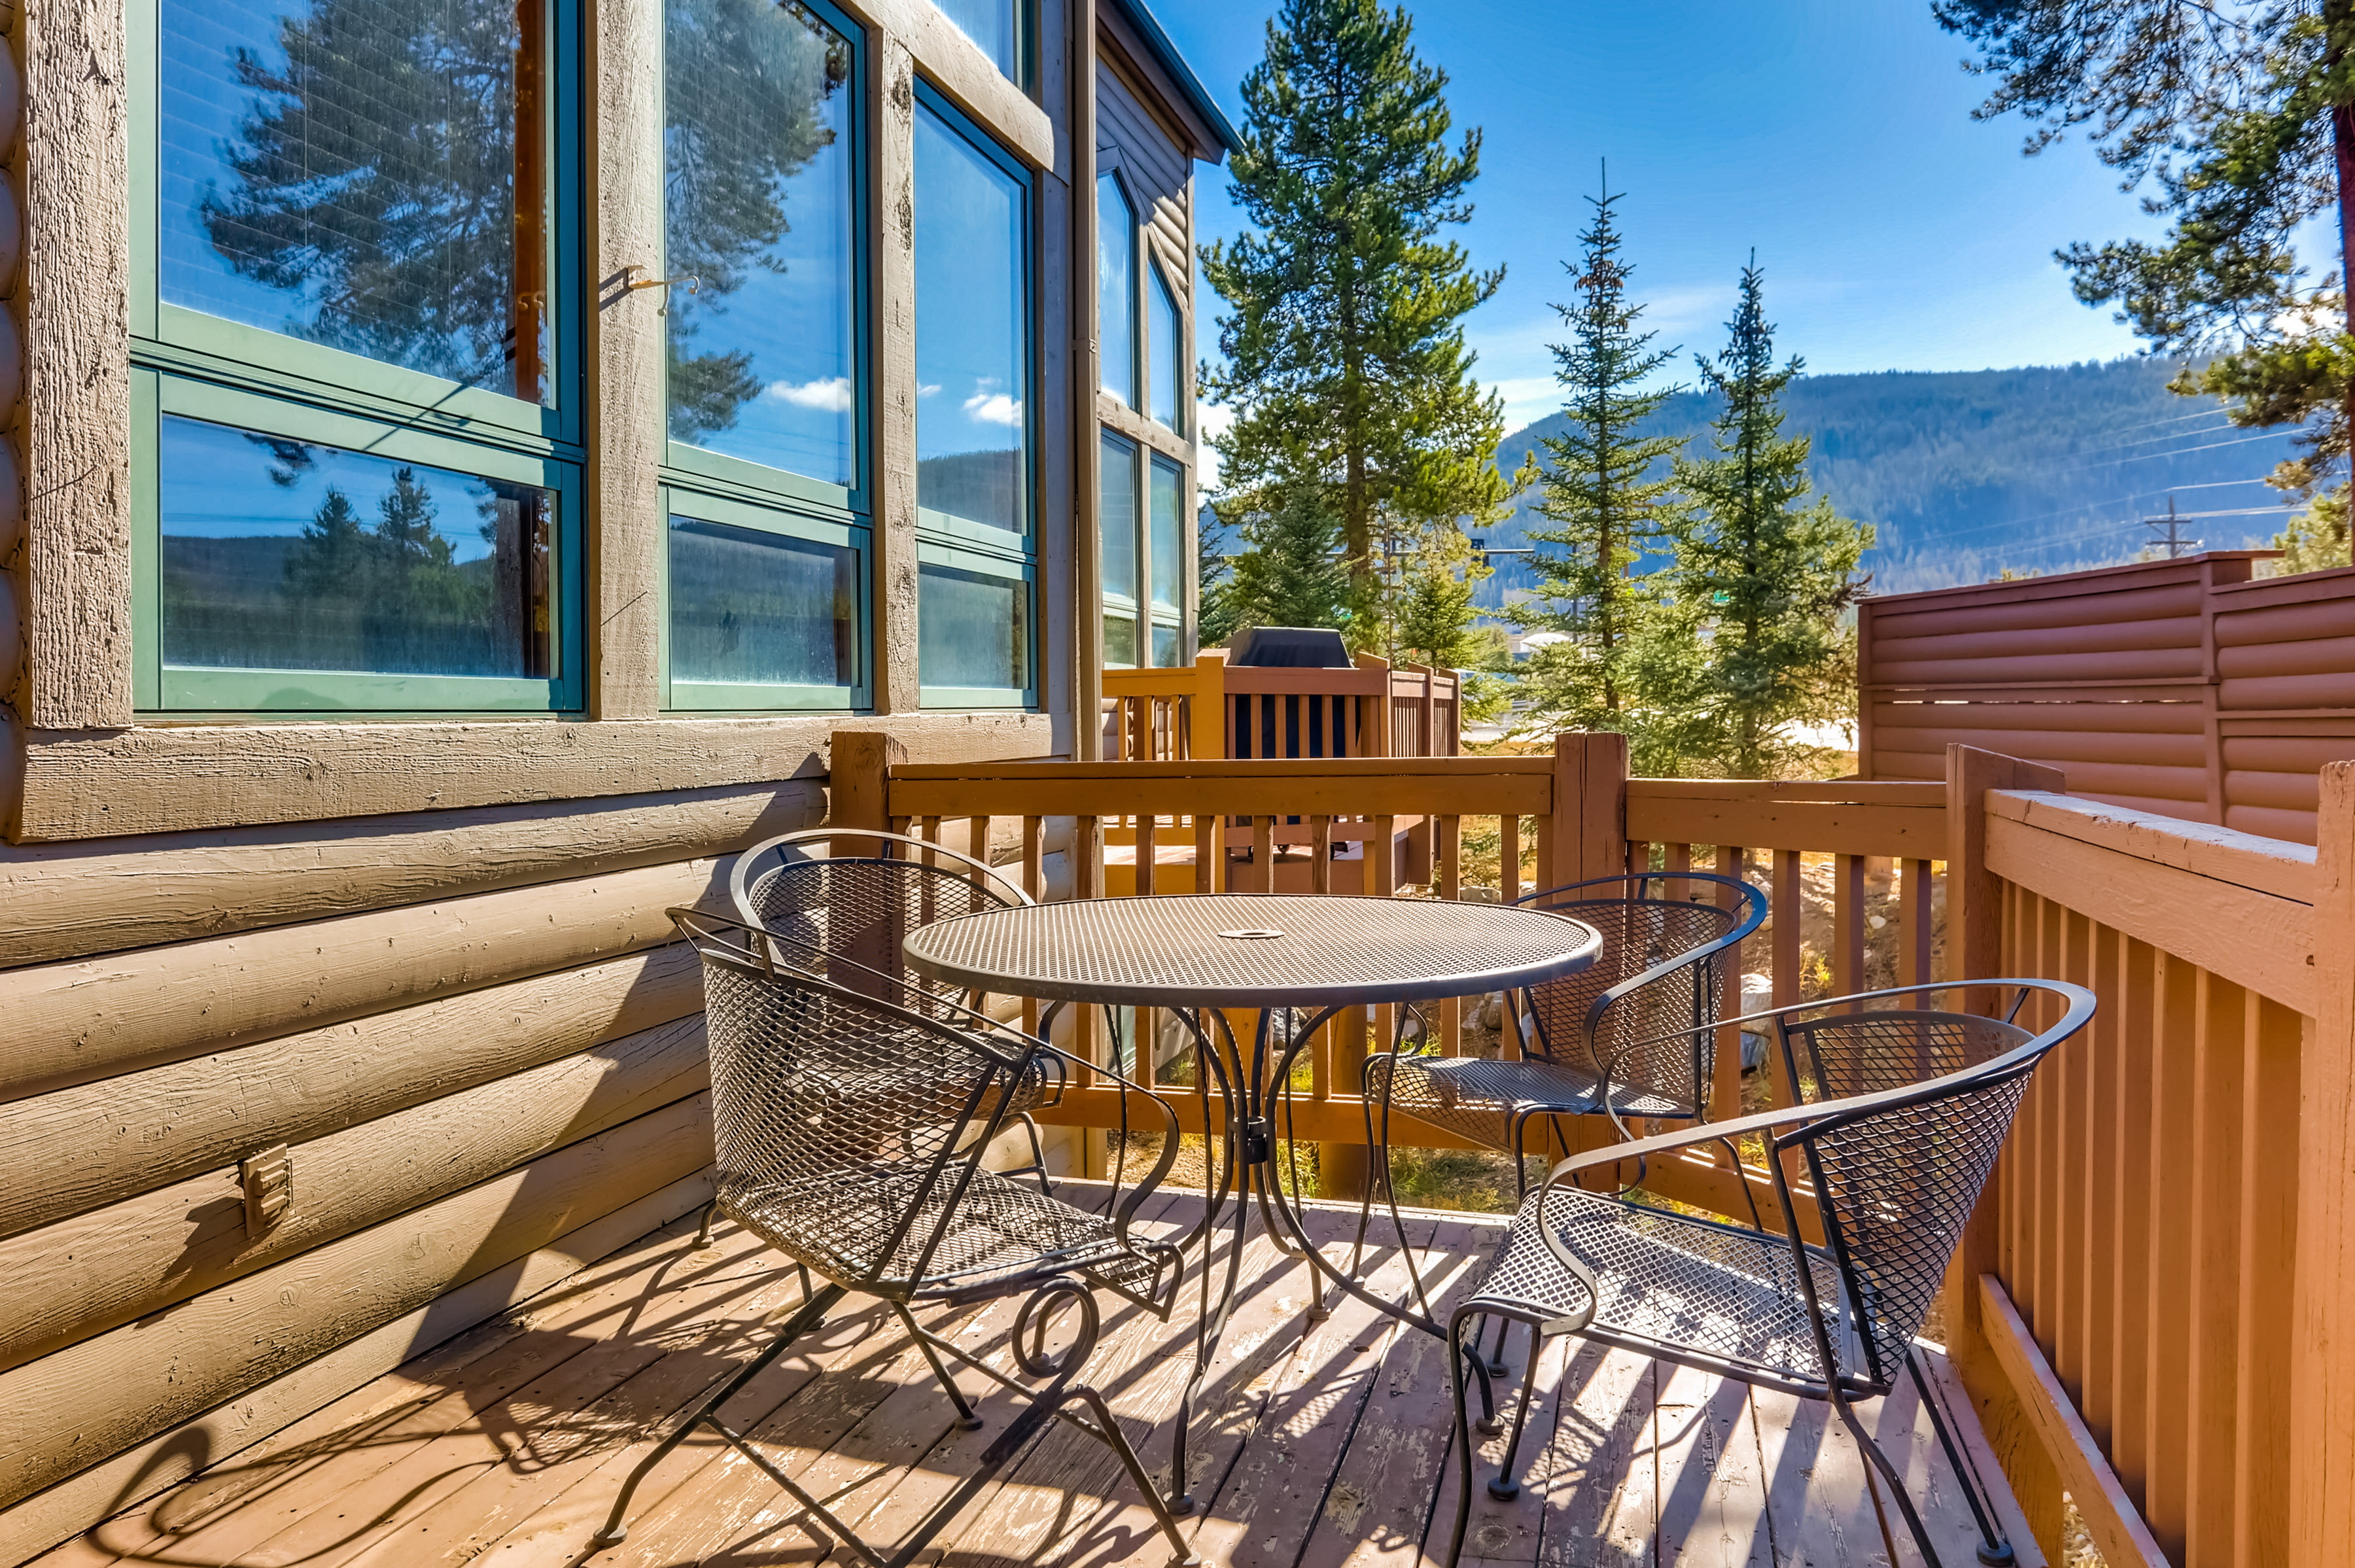 Enjoy the beautiful sunshine and fresh mountain air on the deck.